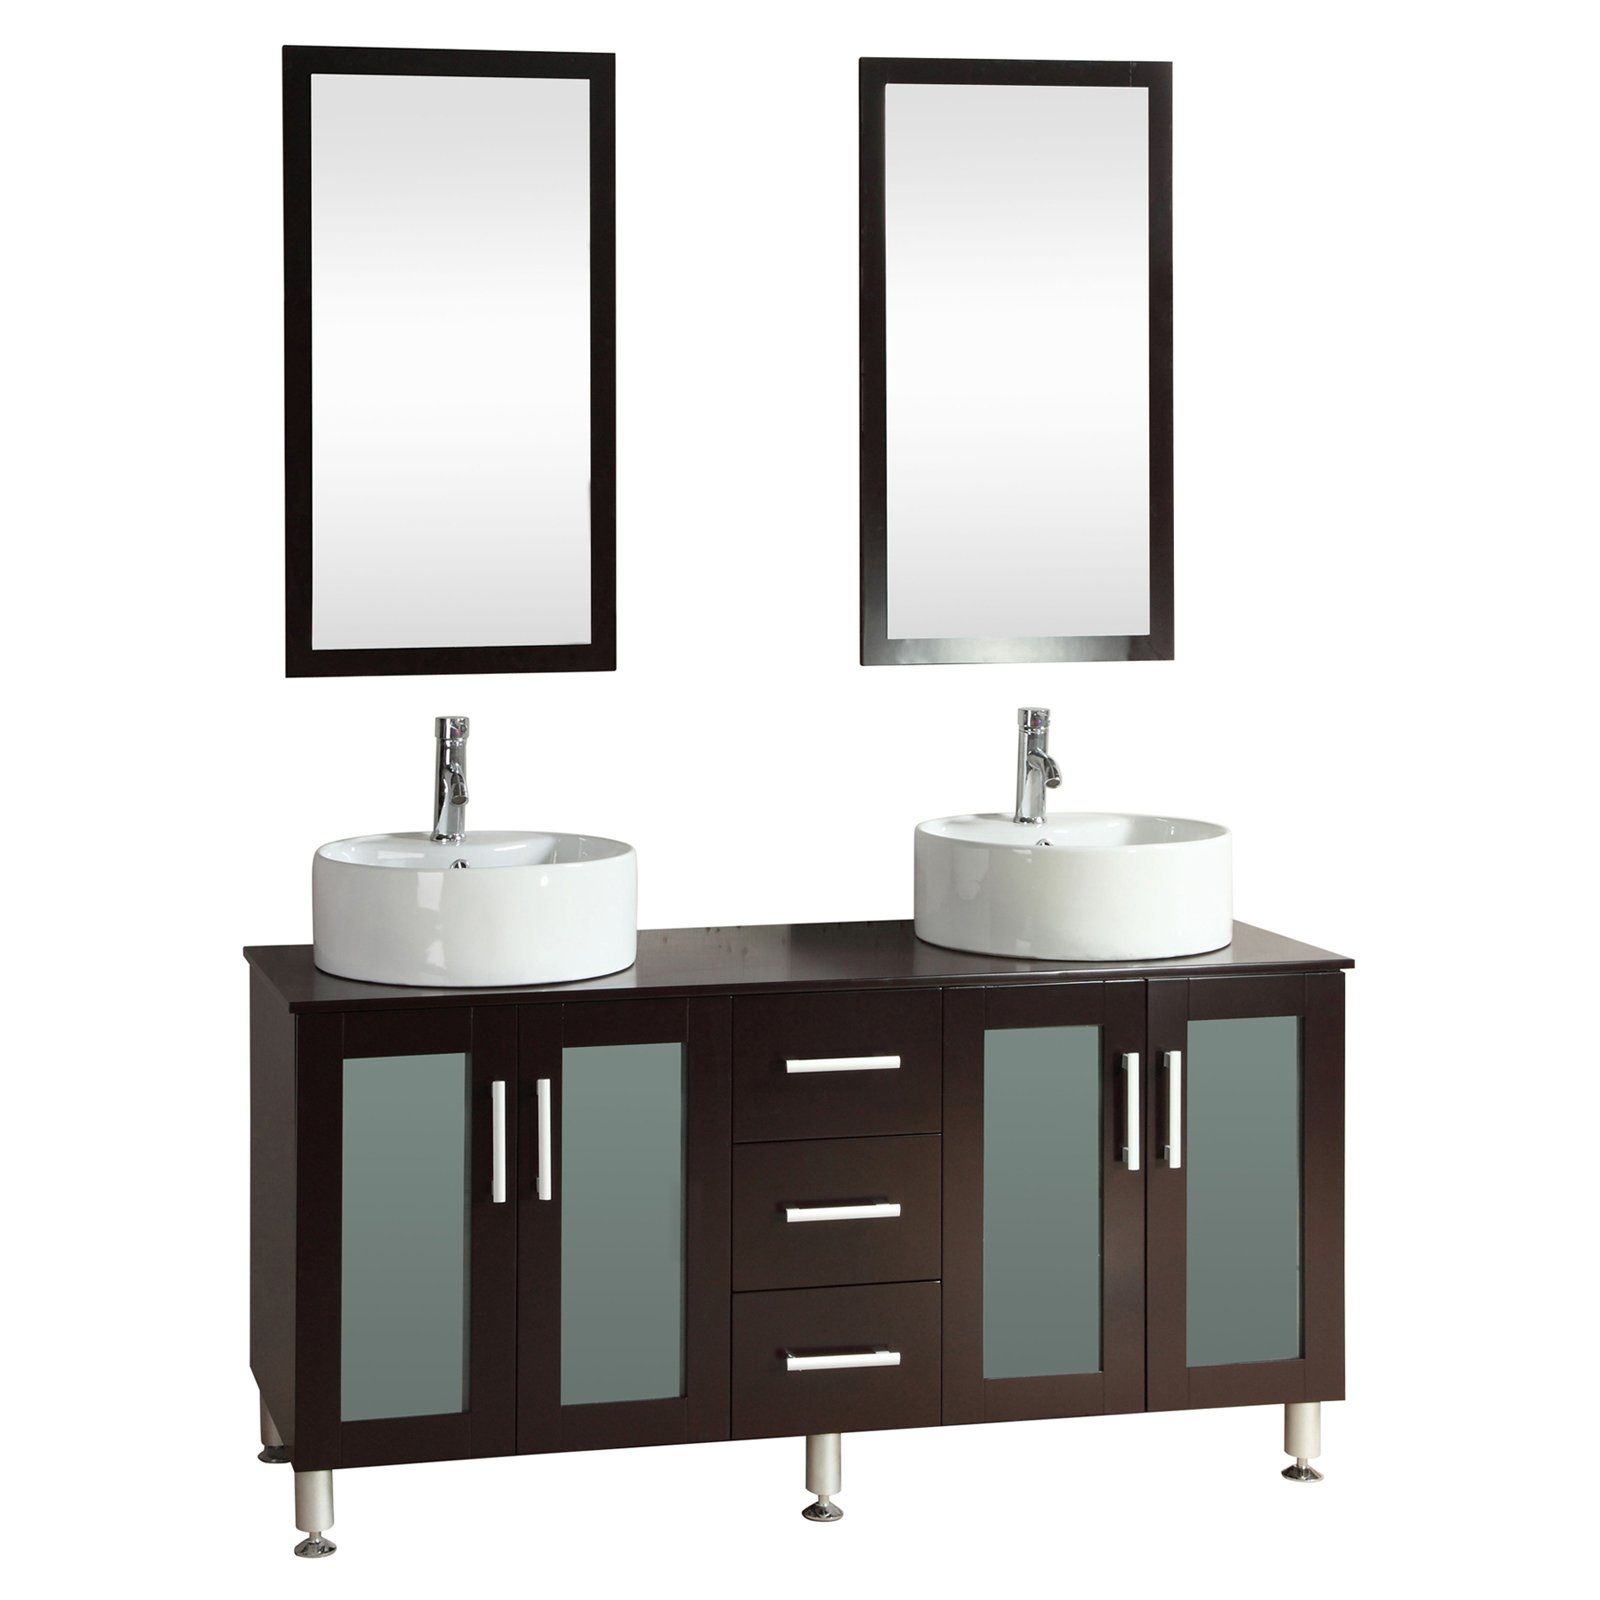 Kokols 9130 60 in. Double Sink Bathroom Vanity